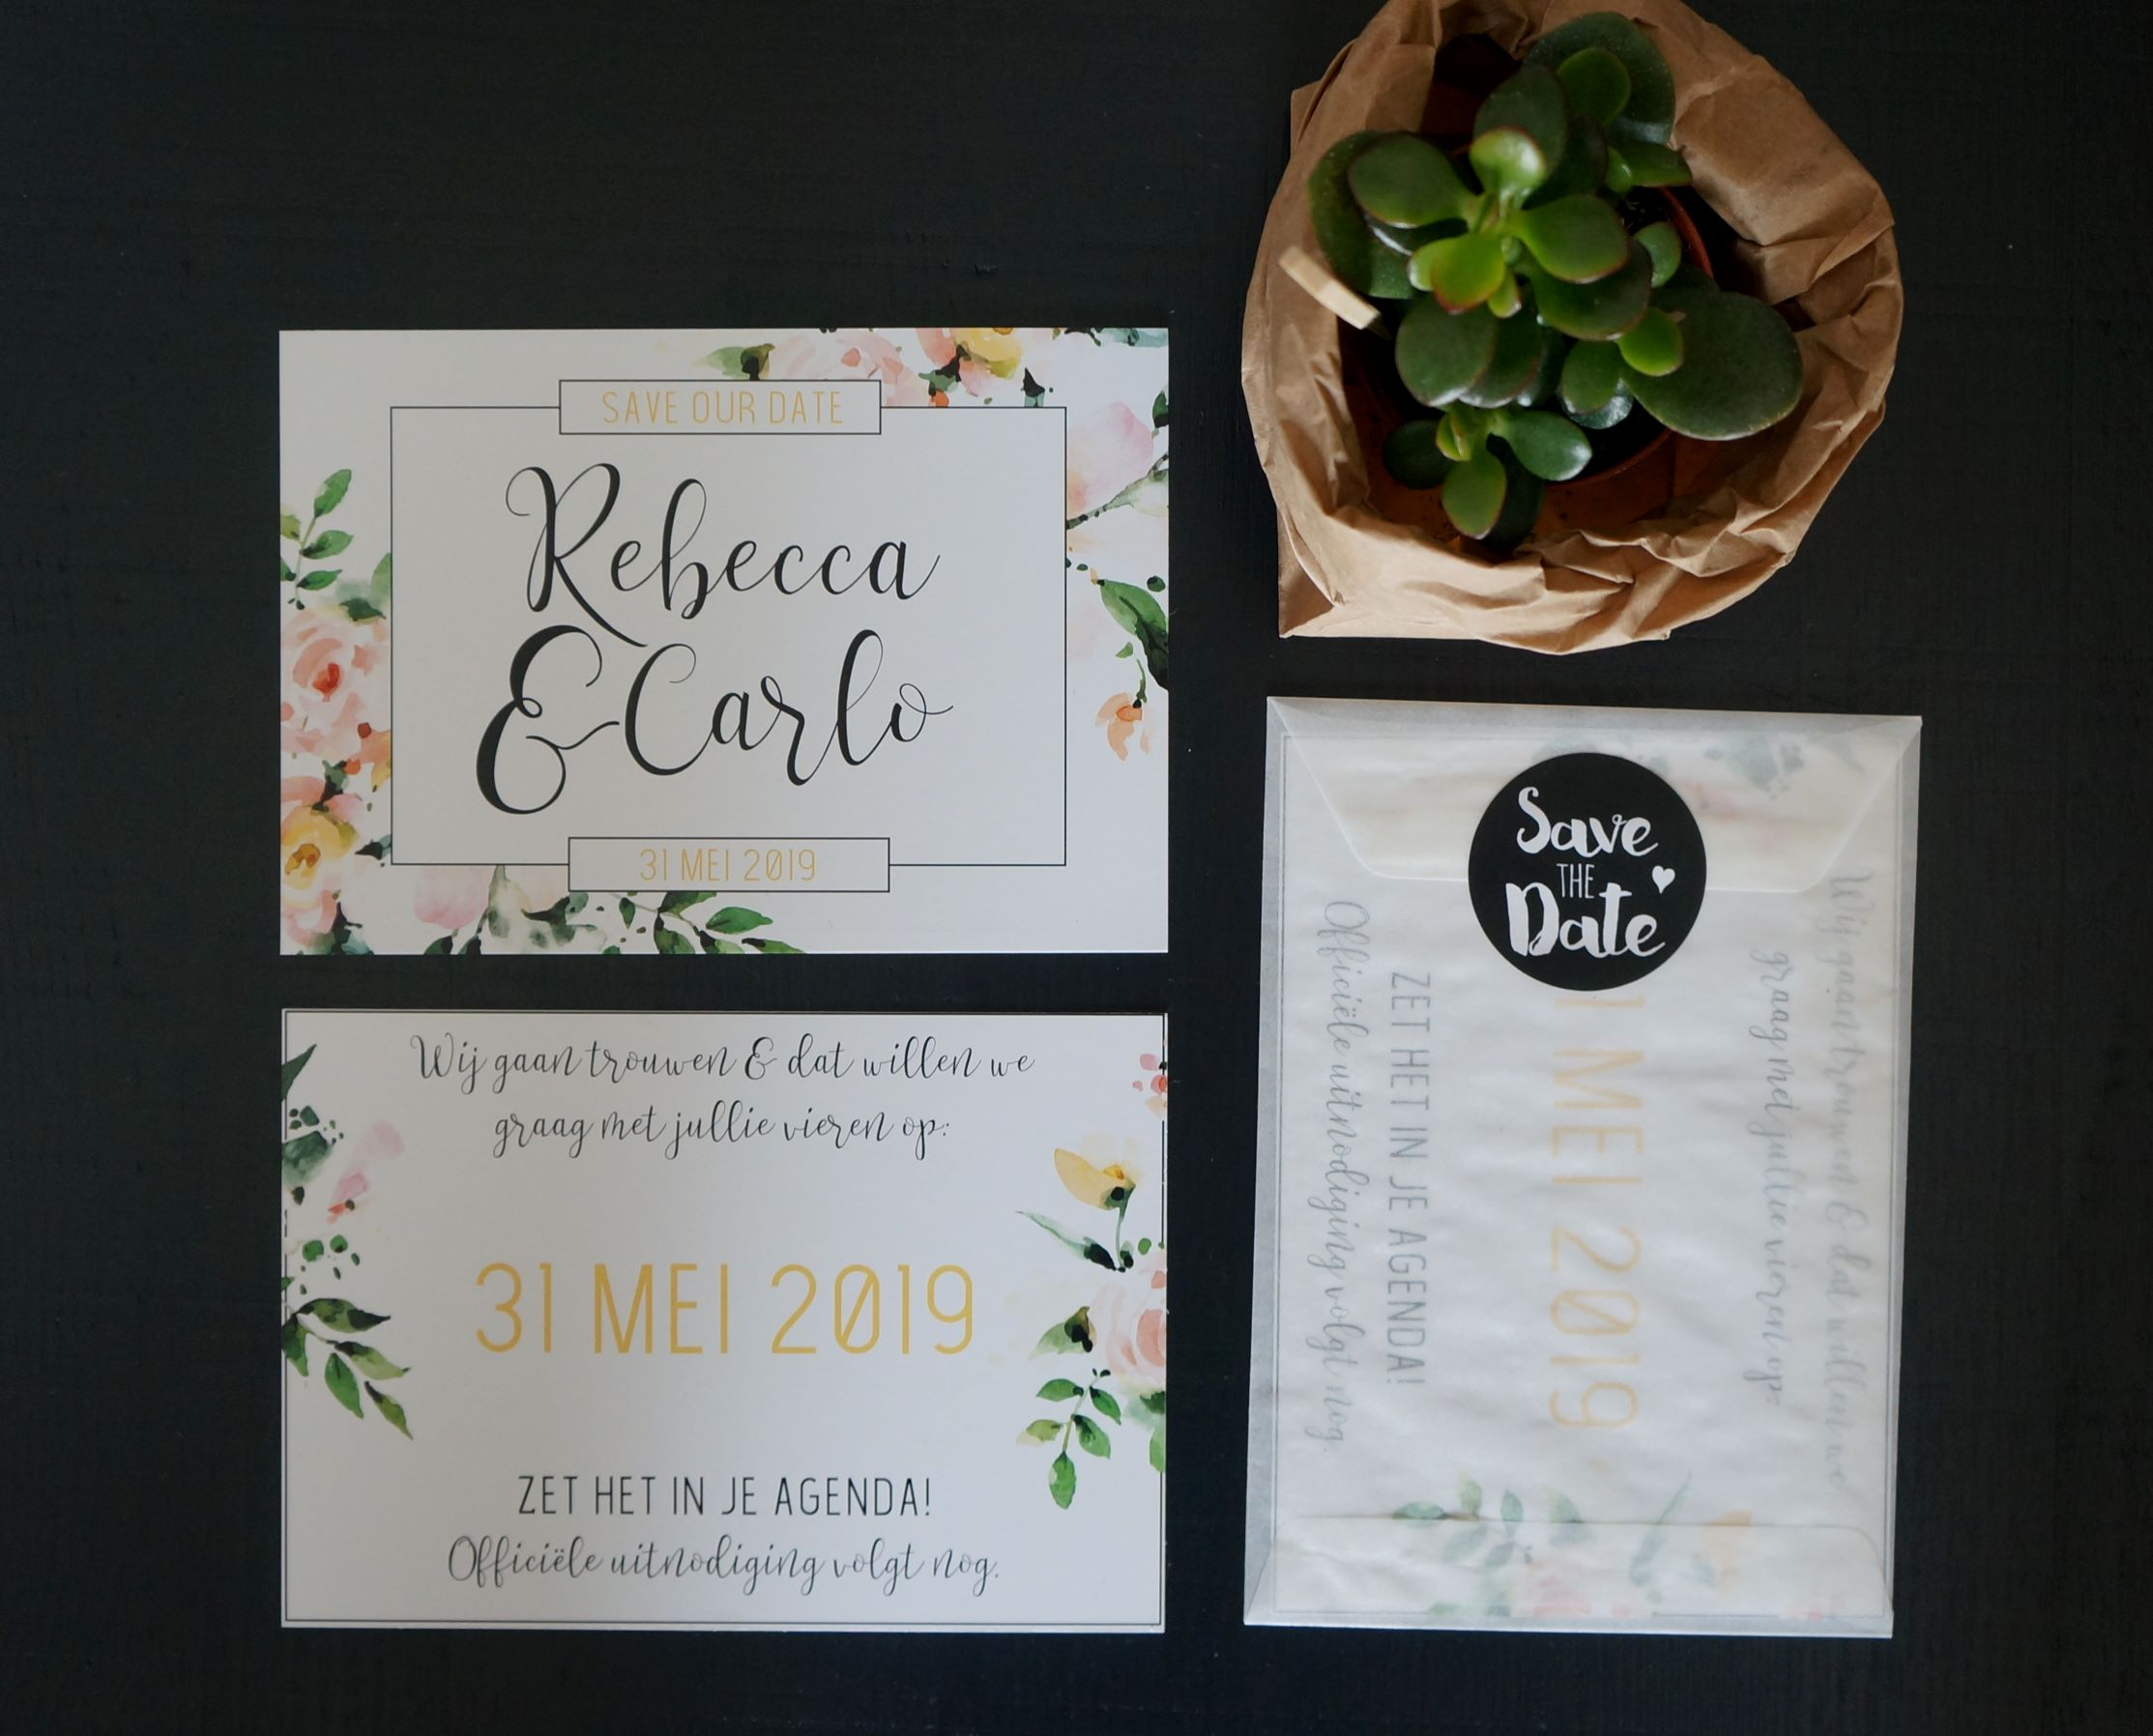 Save the date Rebecca & Carlo